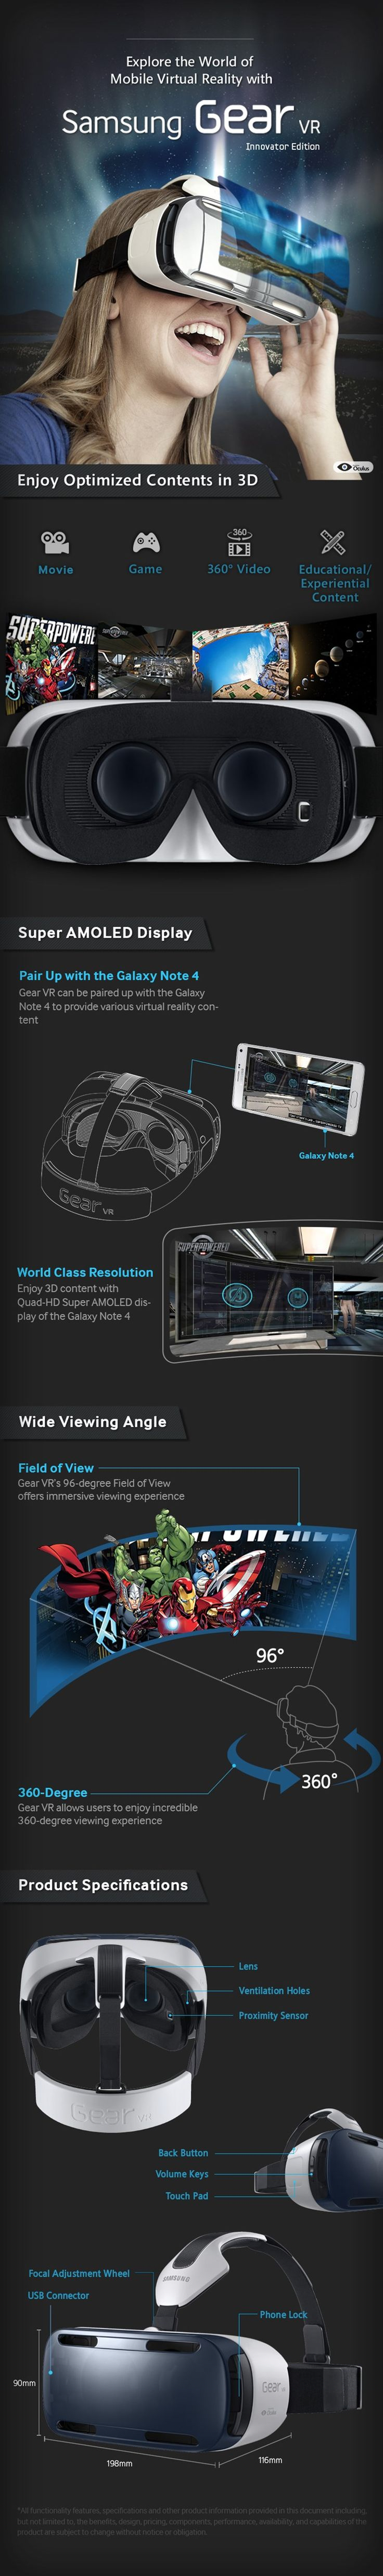 Samsung's Gear VR has officially arrived and with it comes a Super AMOLED display, 3D graphics, and an immersive 360-degree viewing experience. The...